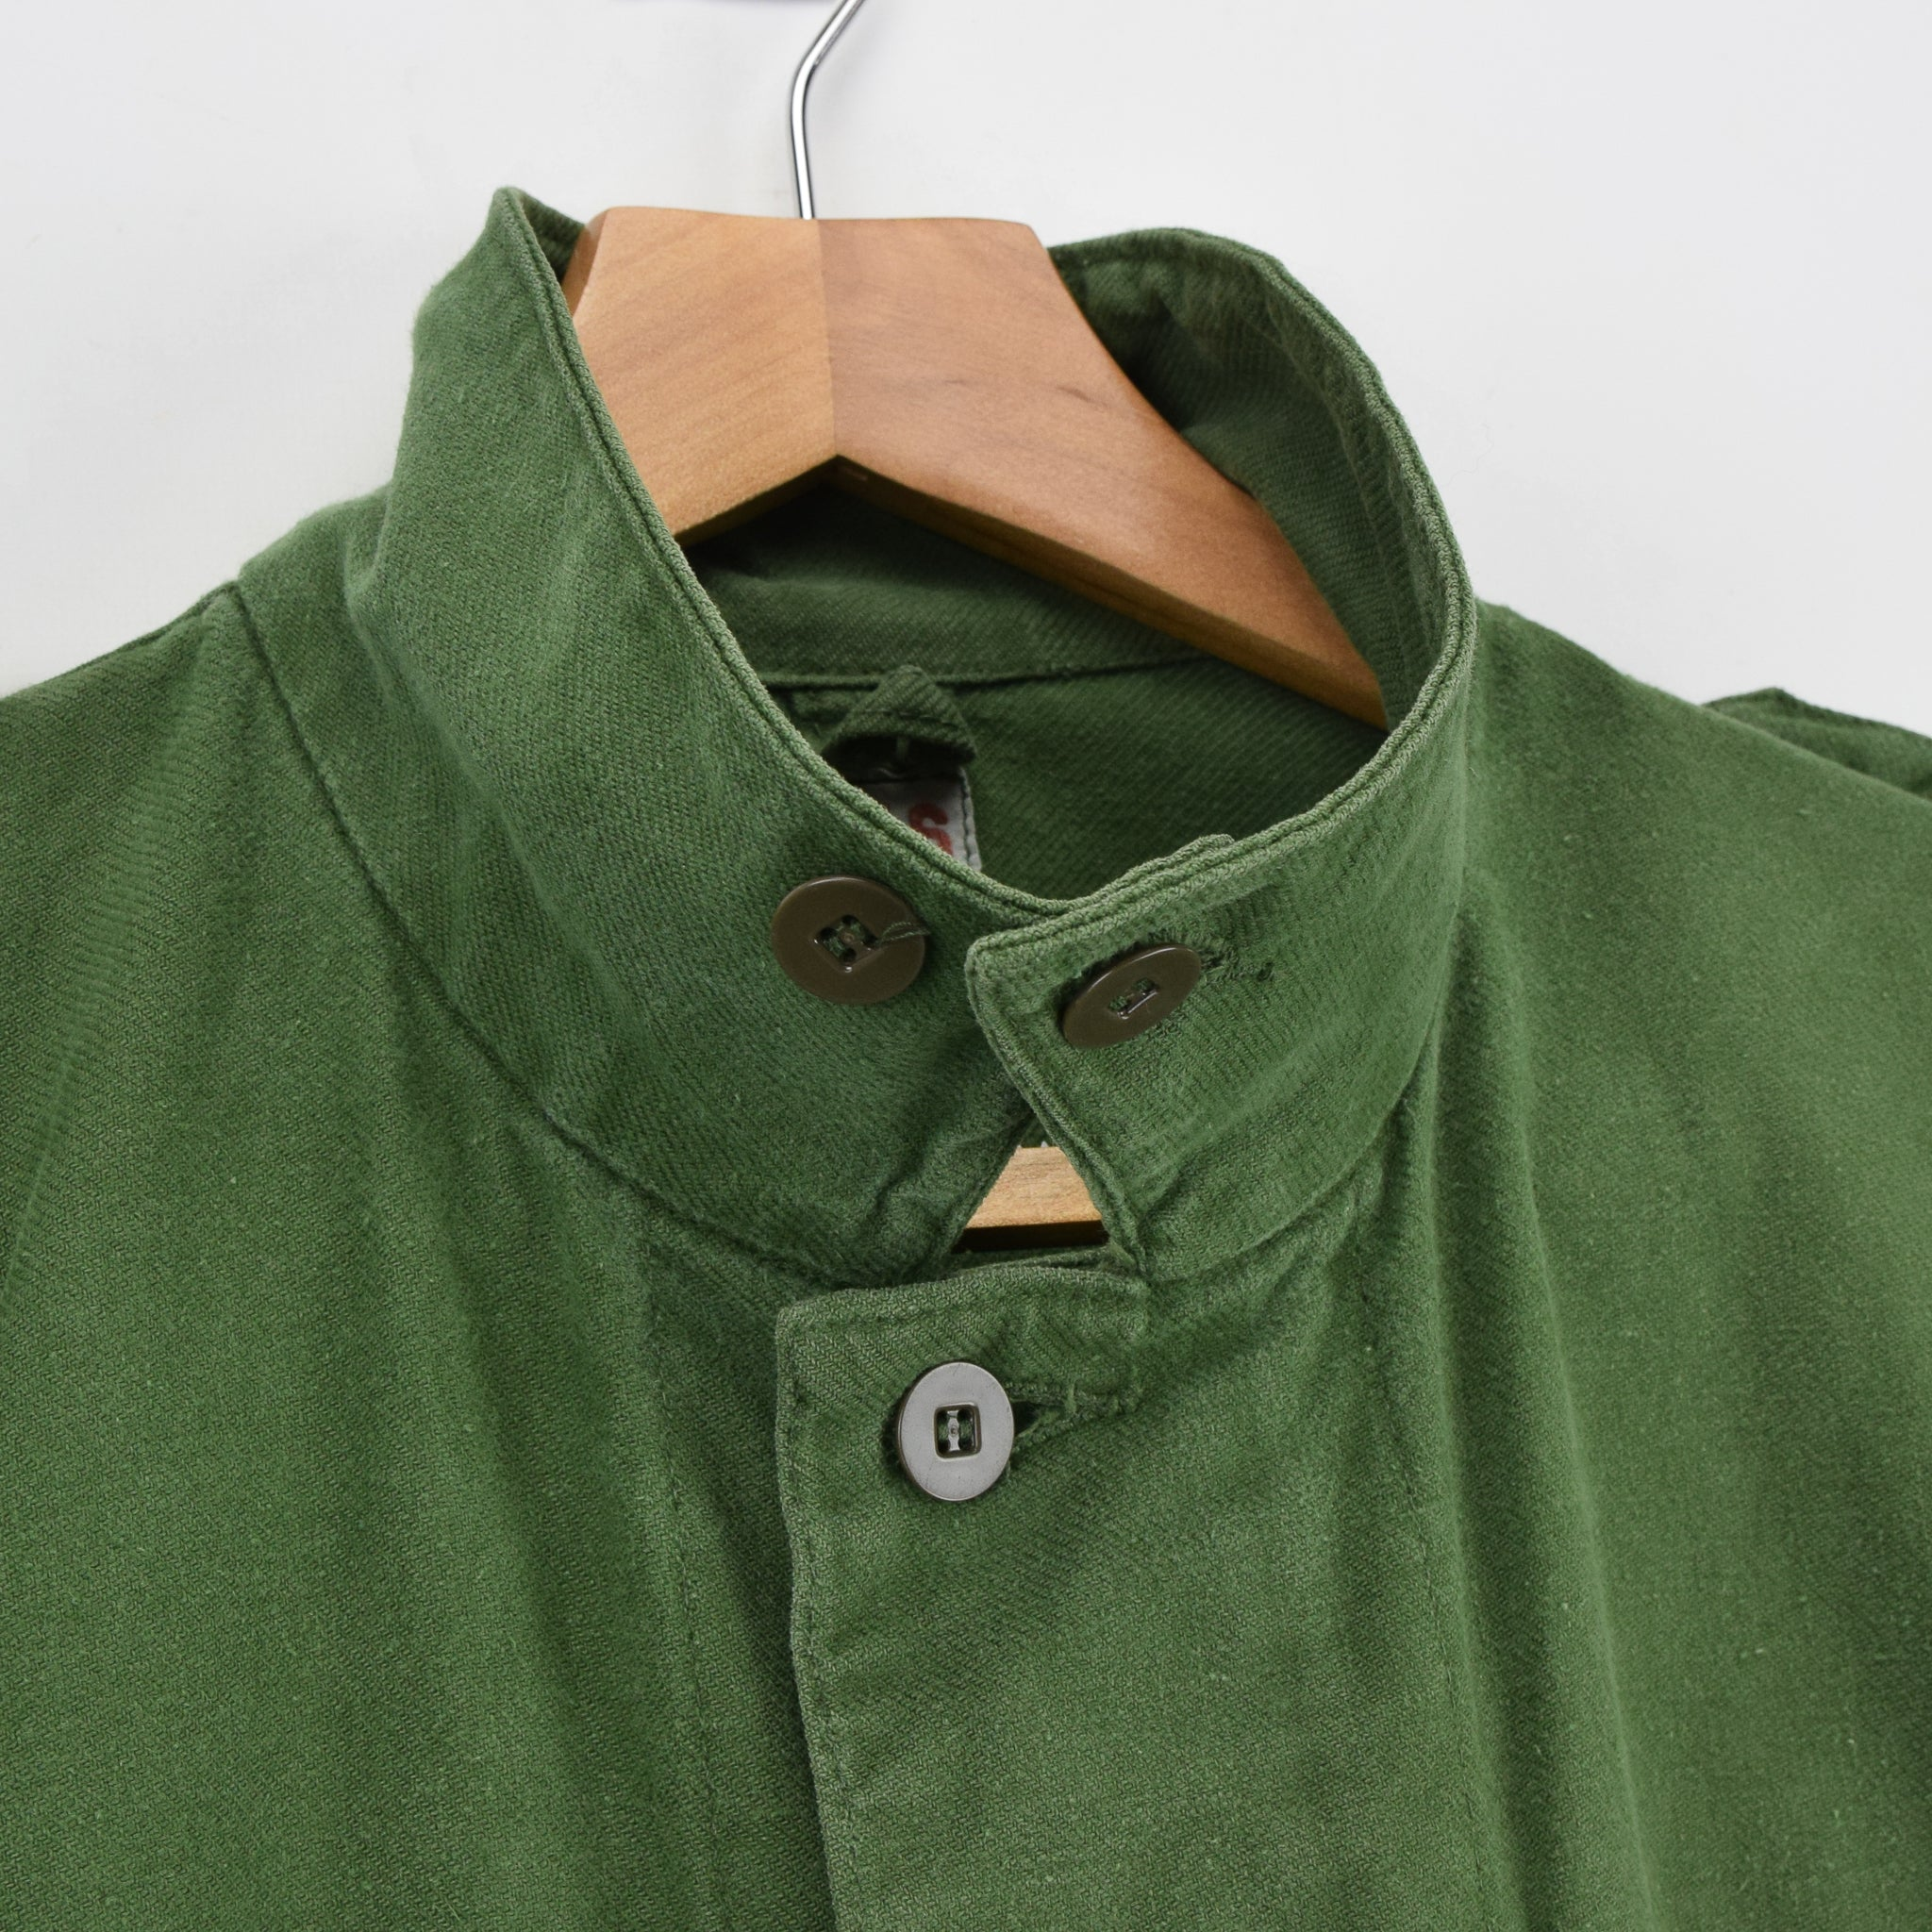 Vintage Swedish Worker Style Distressed Green Military Field Shirt Jacket M collar